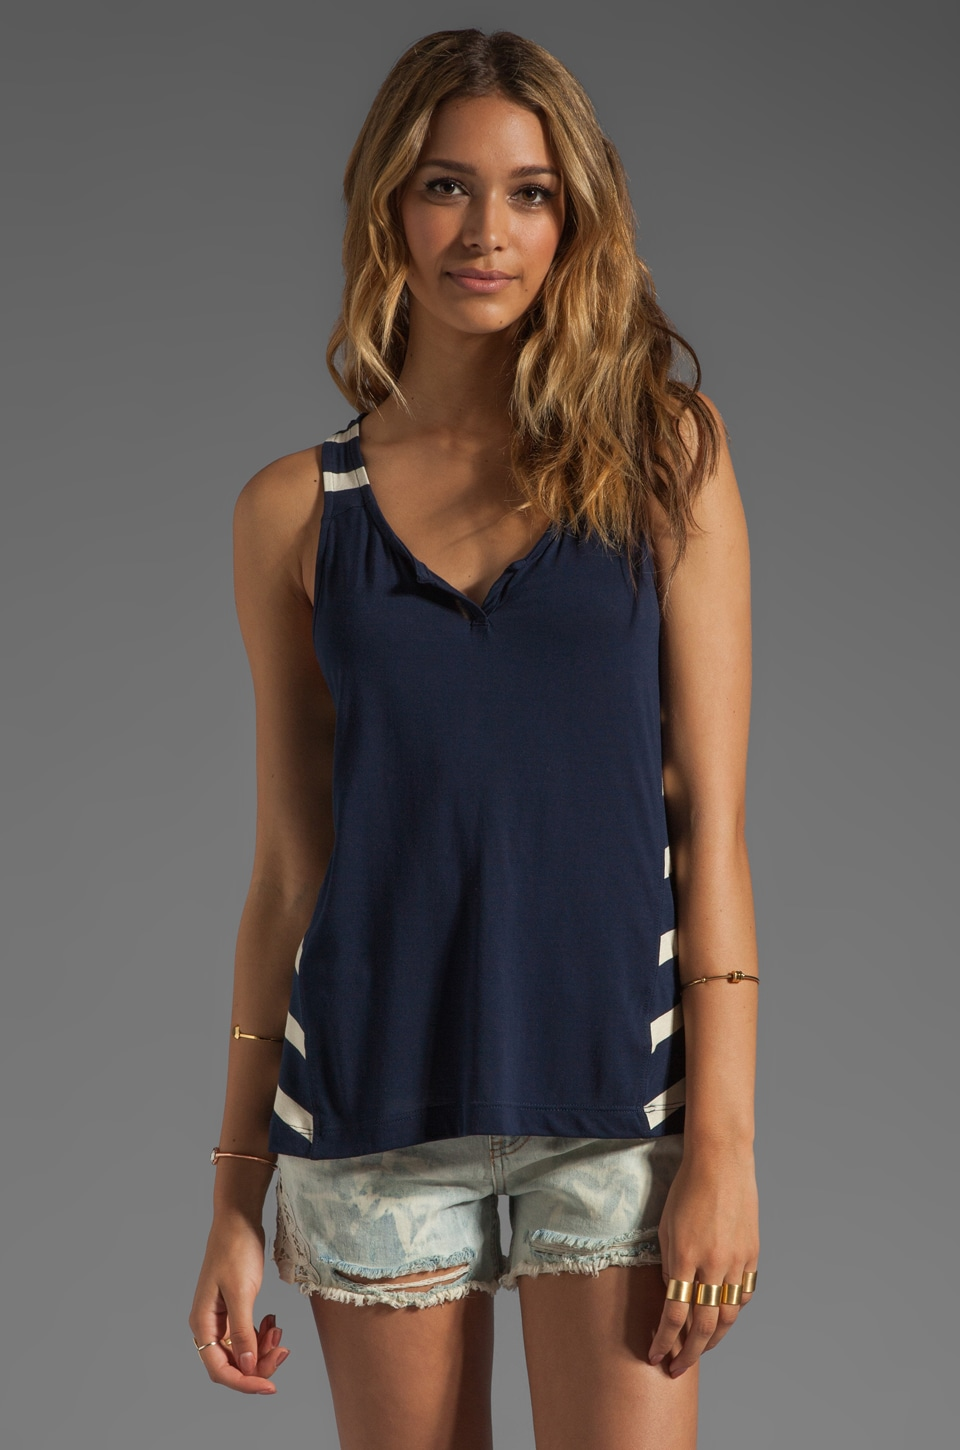 LA Made Stripe Racerback Tank with Side Panels in Galaxy/Oatmeal